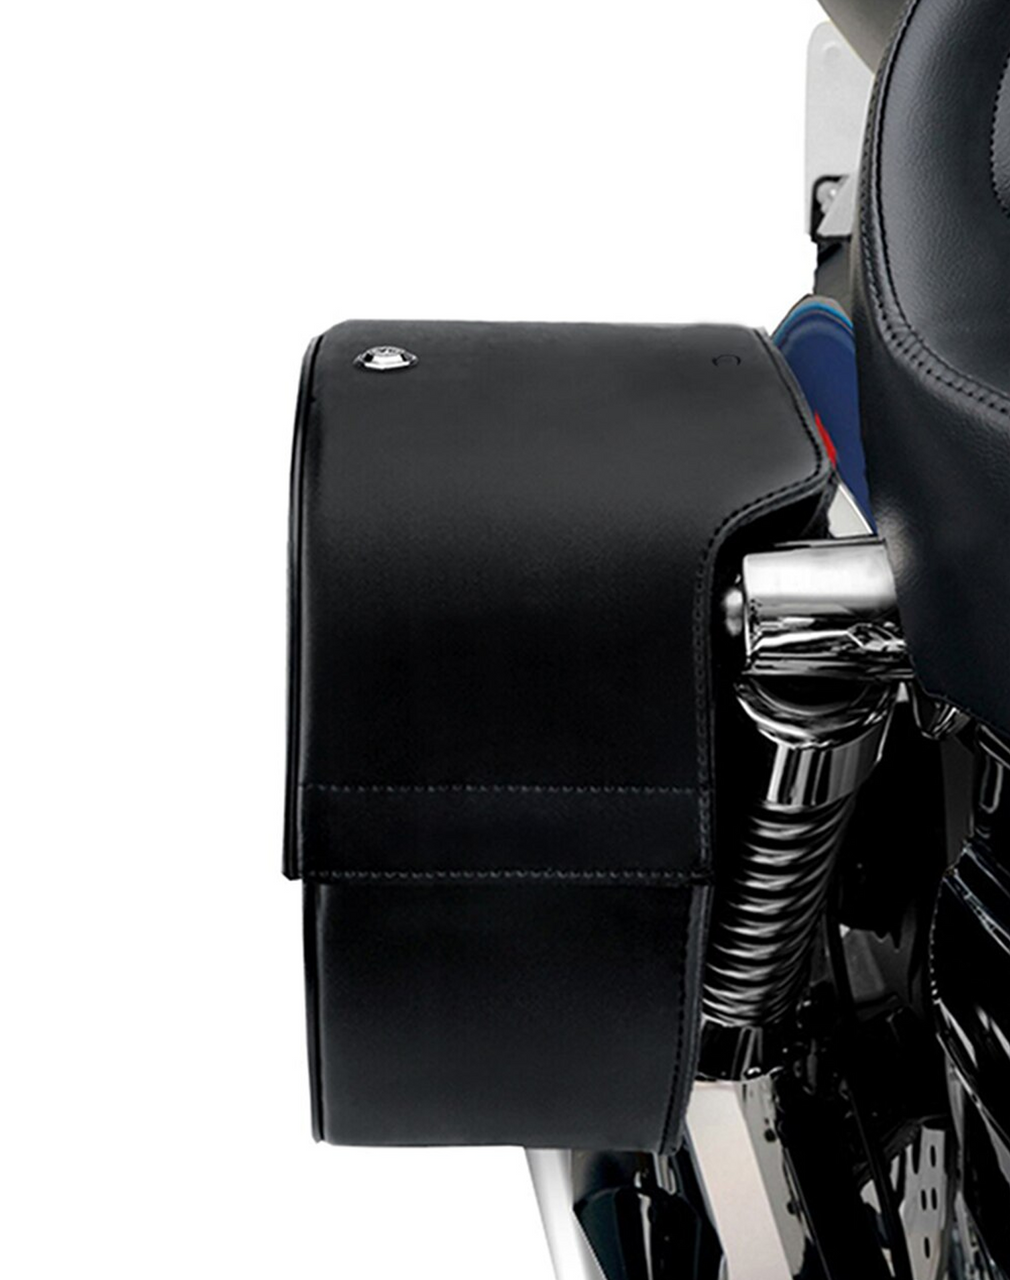 Viking Shock Cutout Slanted Studded SS Large Motorcycle Saddlebags For Harley Sportster Superlow Shock Cutout View